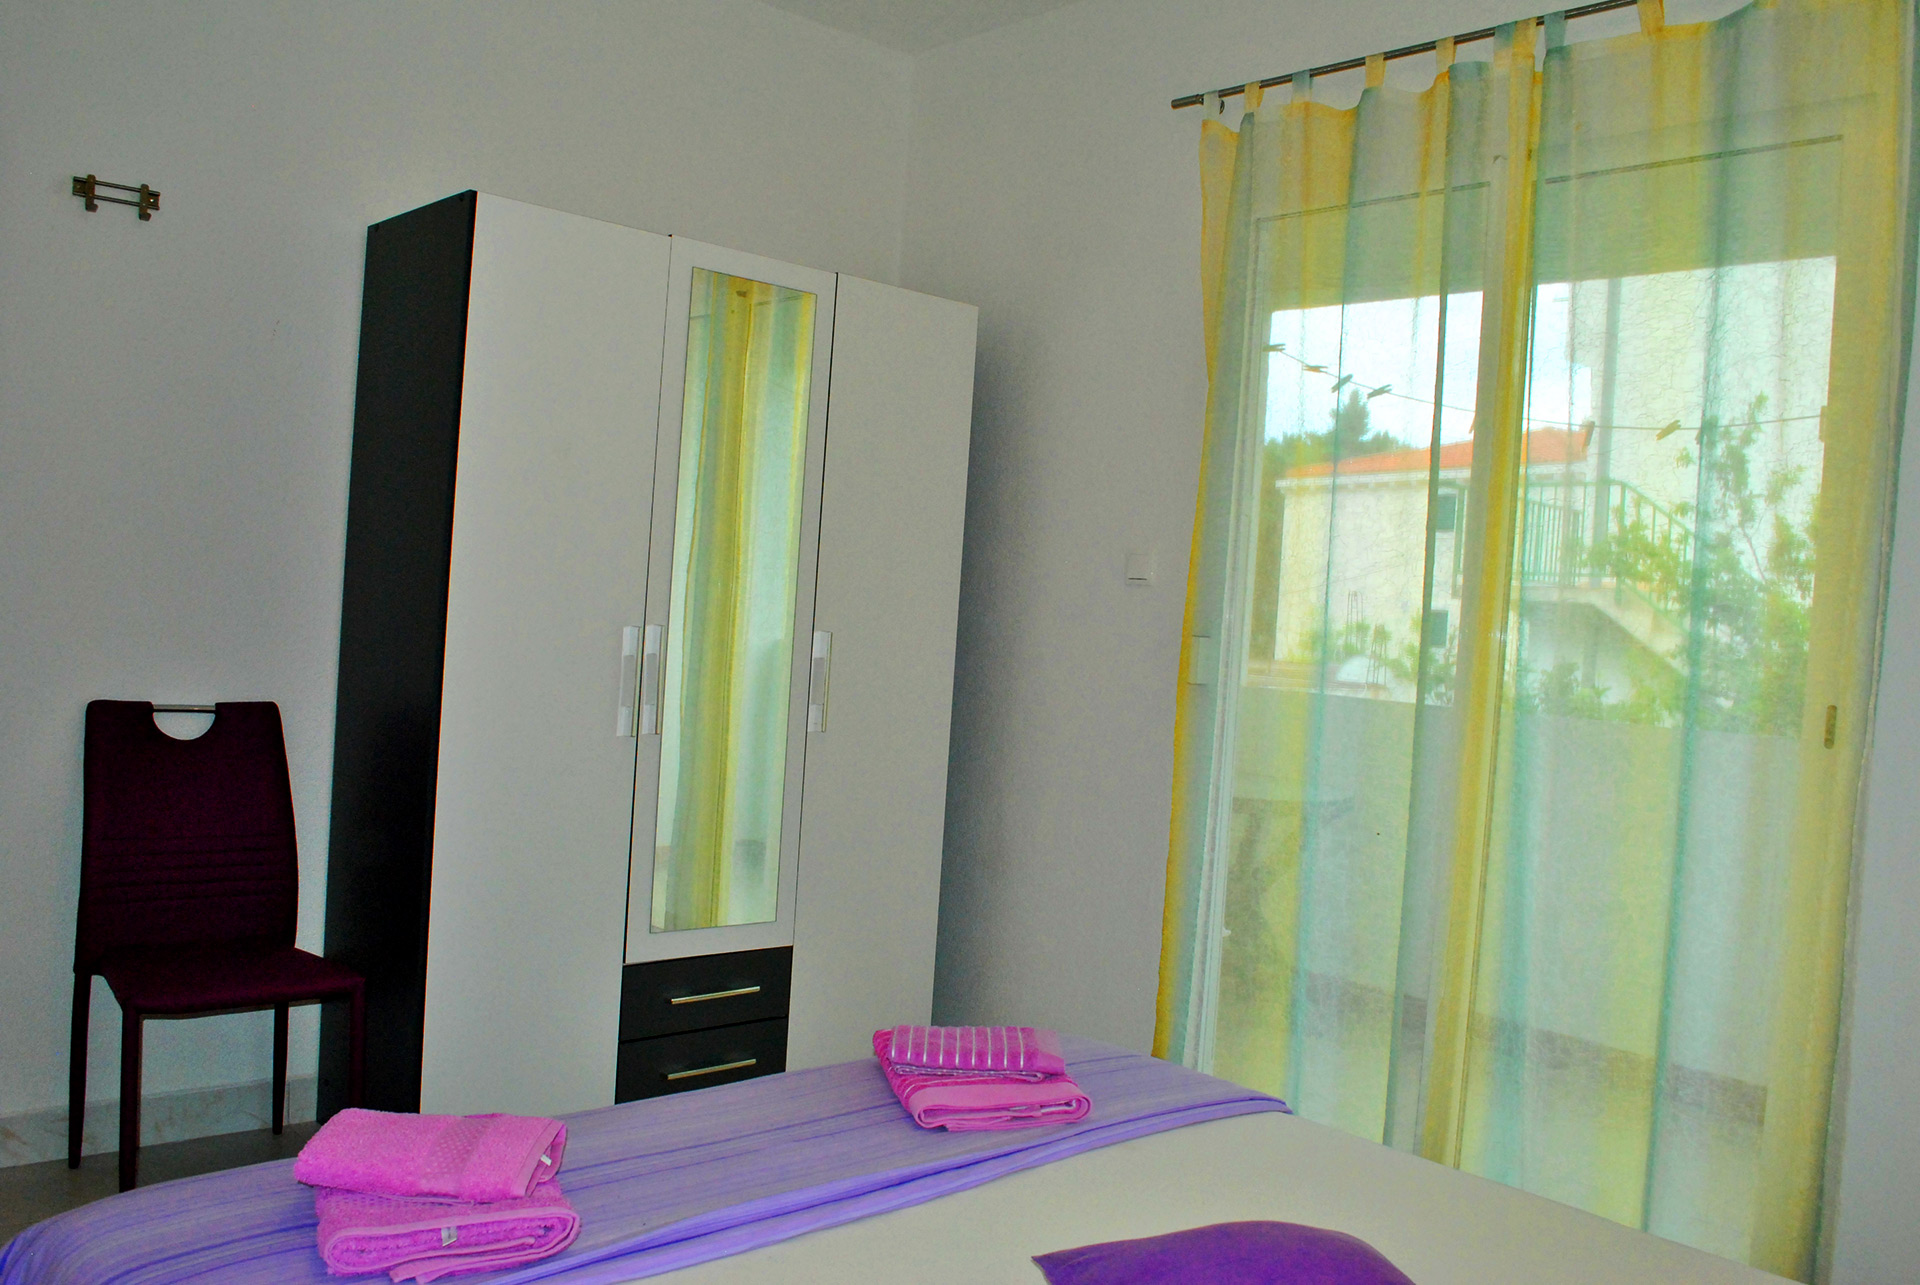 apartmenta1-room-wallside